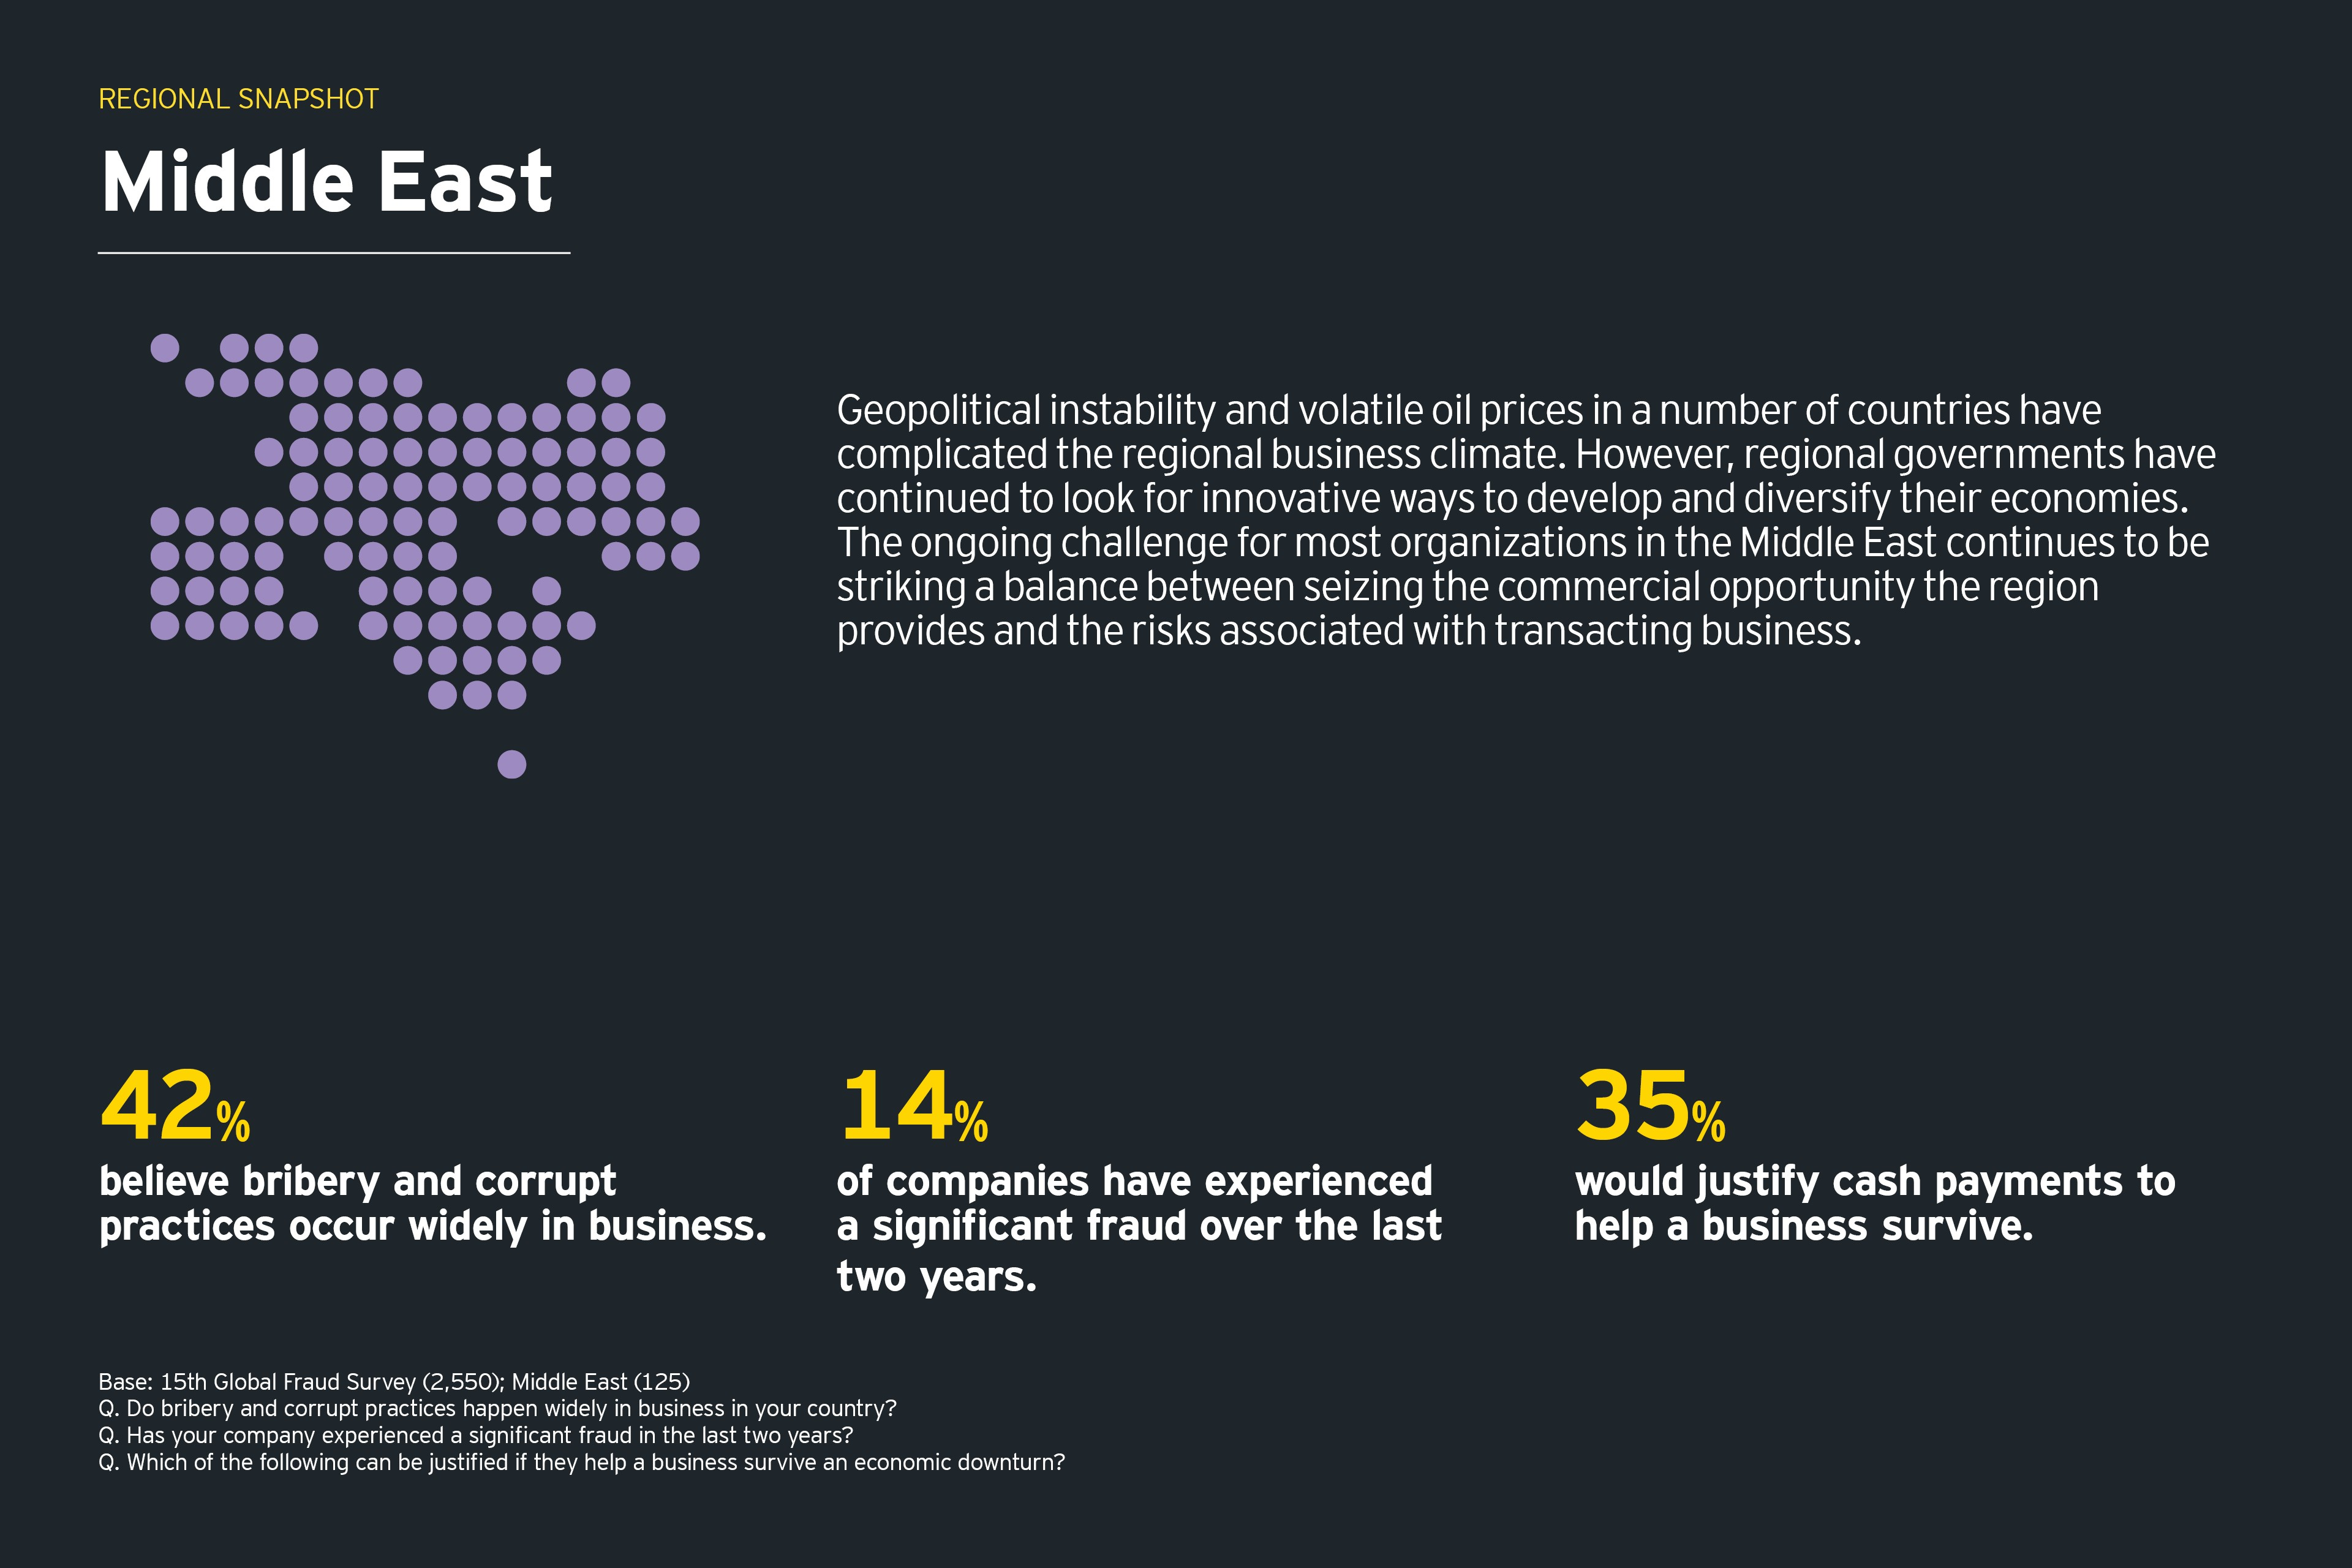 emerging-markets-middle-east